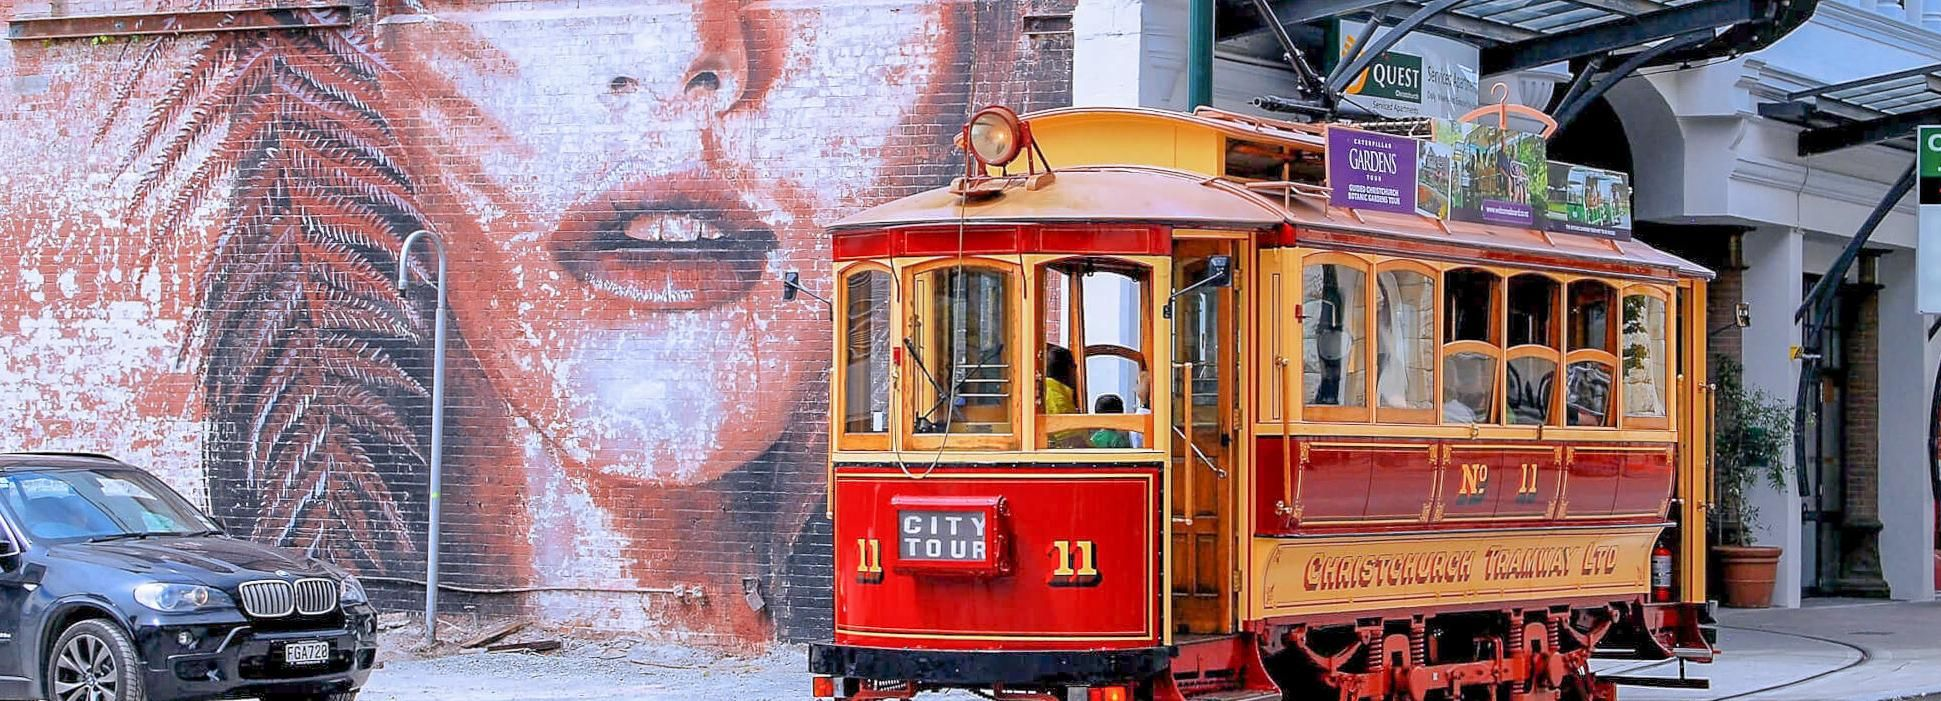 Christchurch: Vintage Tram, Punt and Gondola Ride Combo